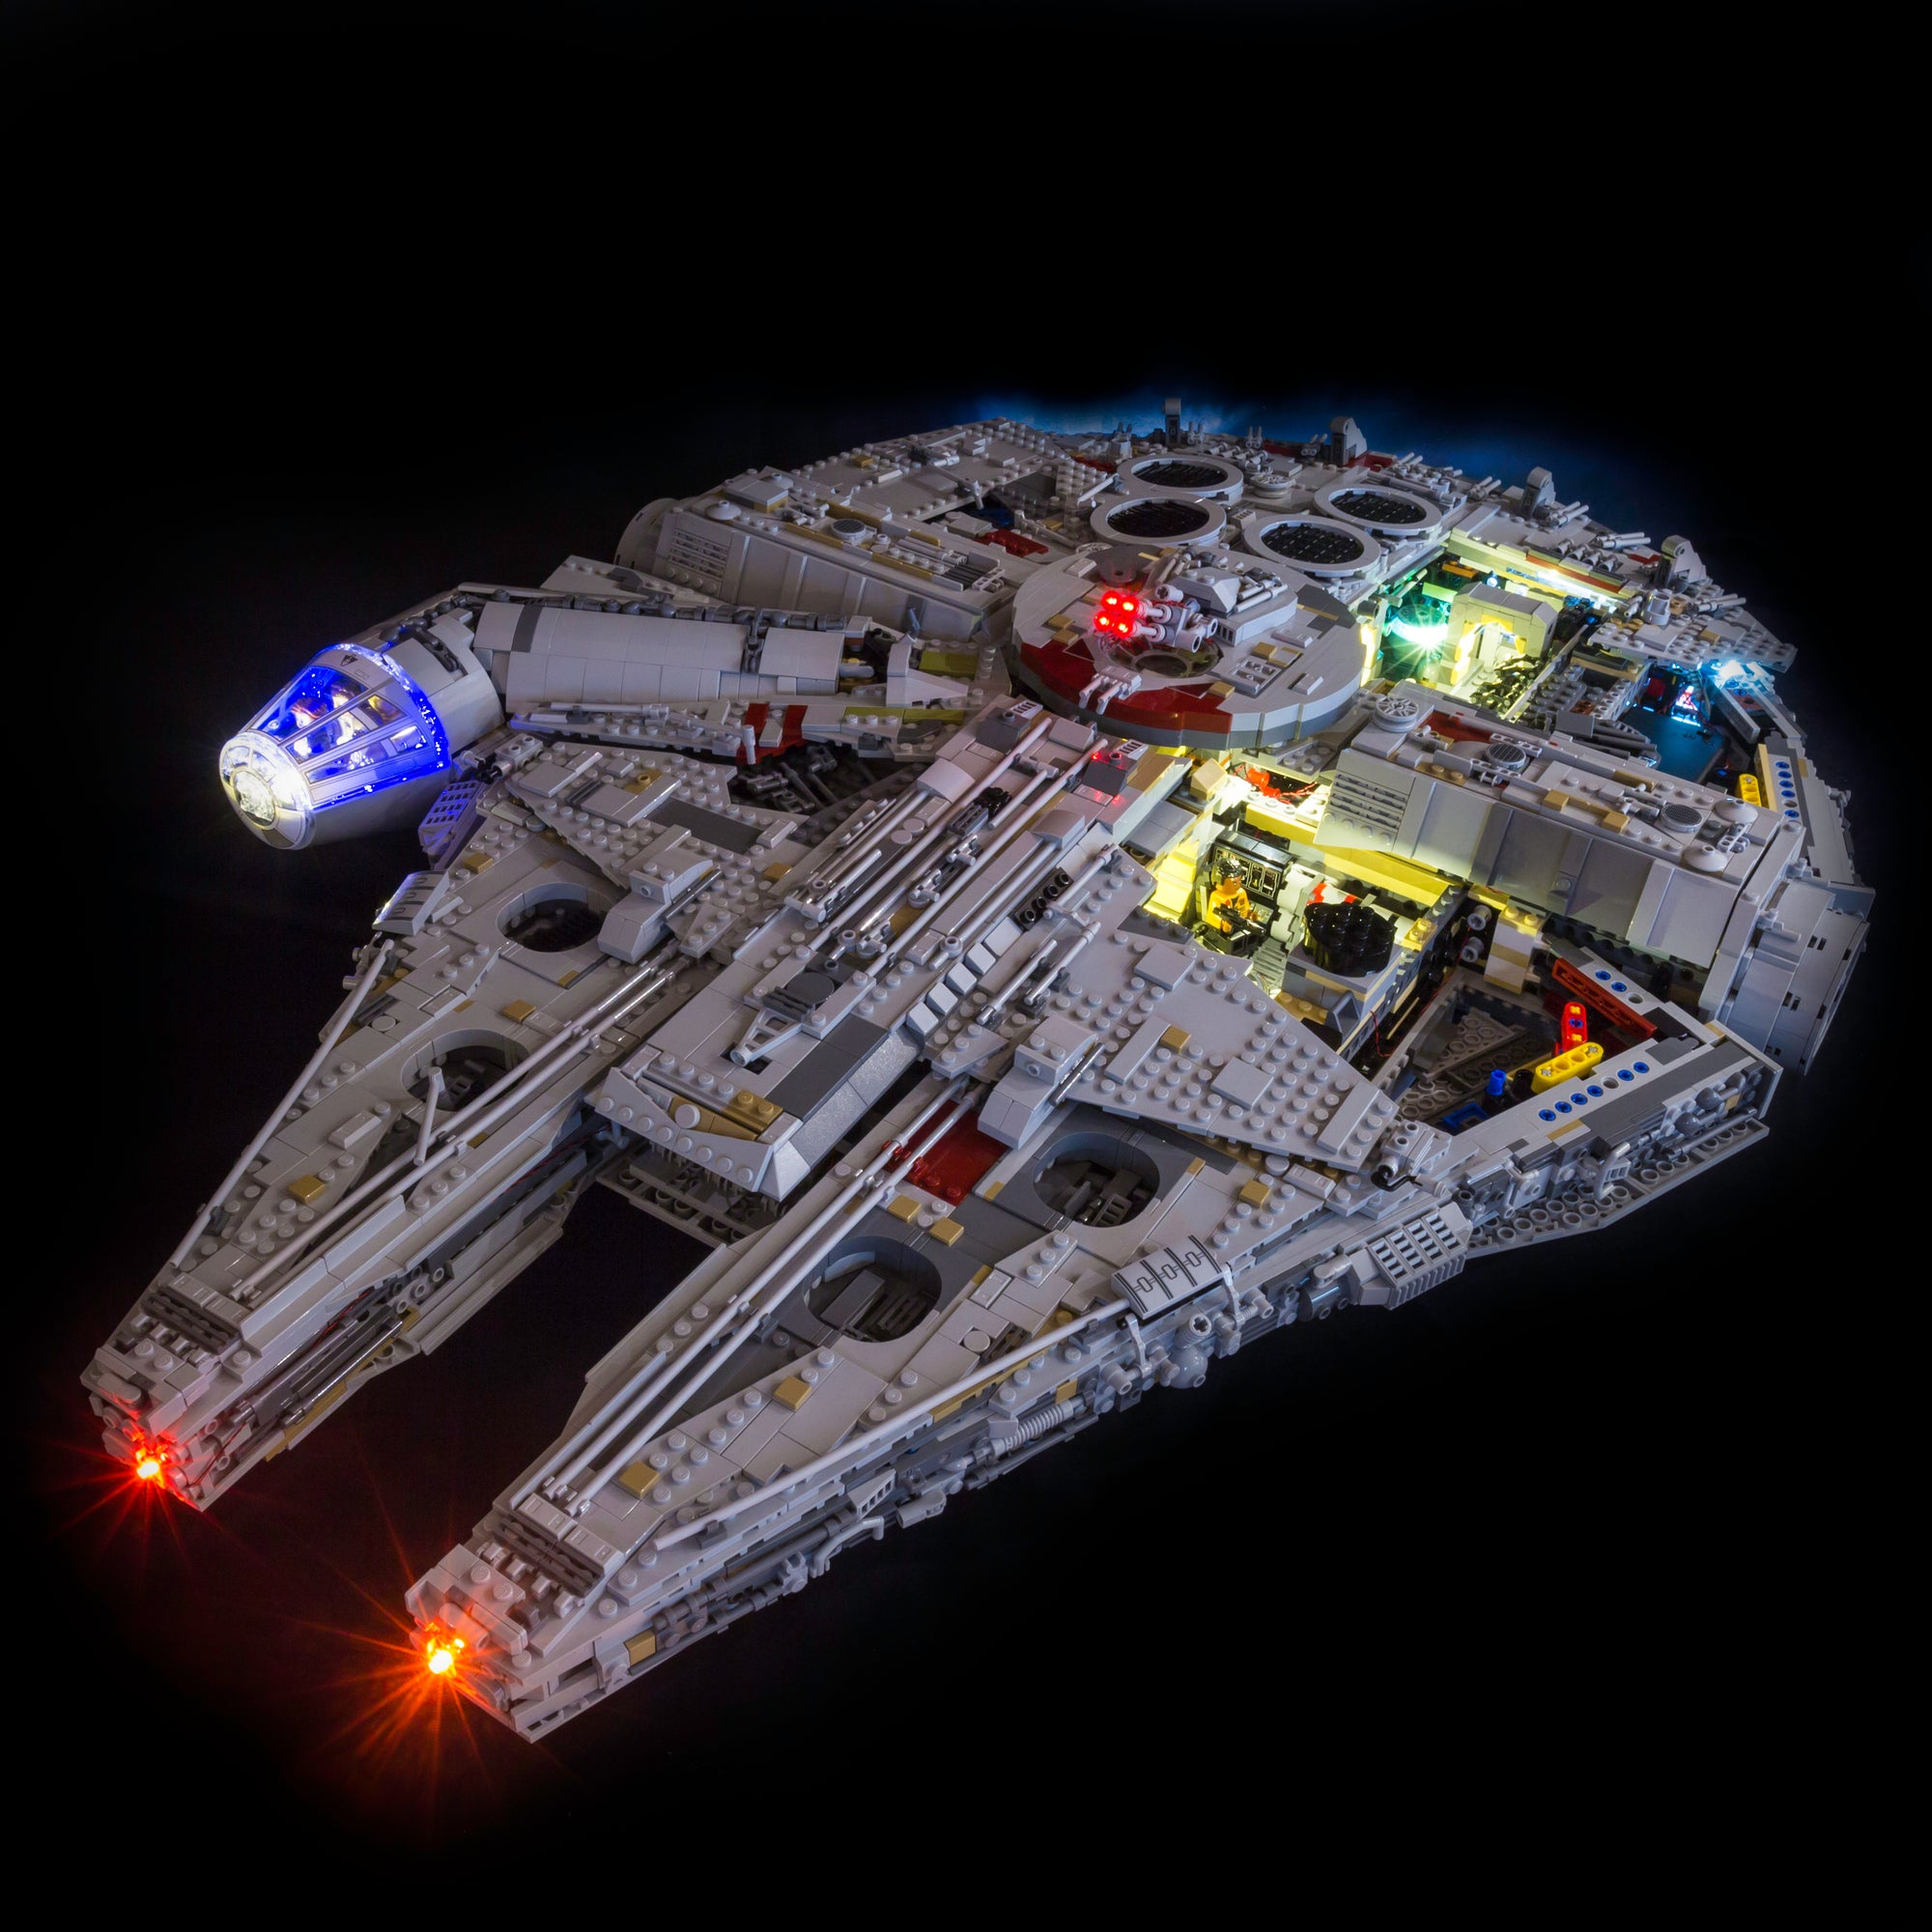 LEGO UCS Millennium Falcon 75192 light kit